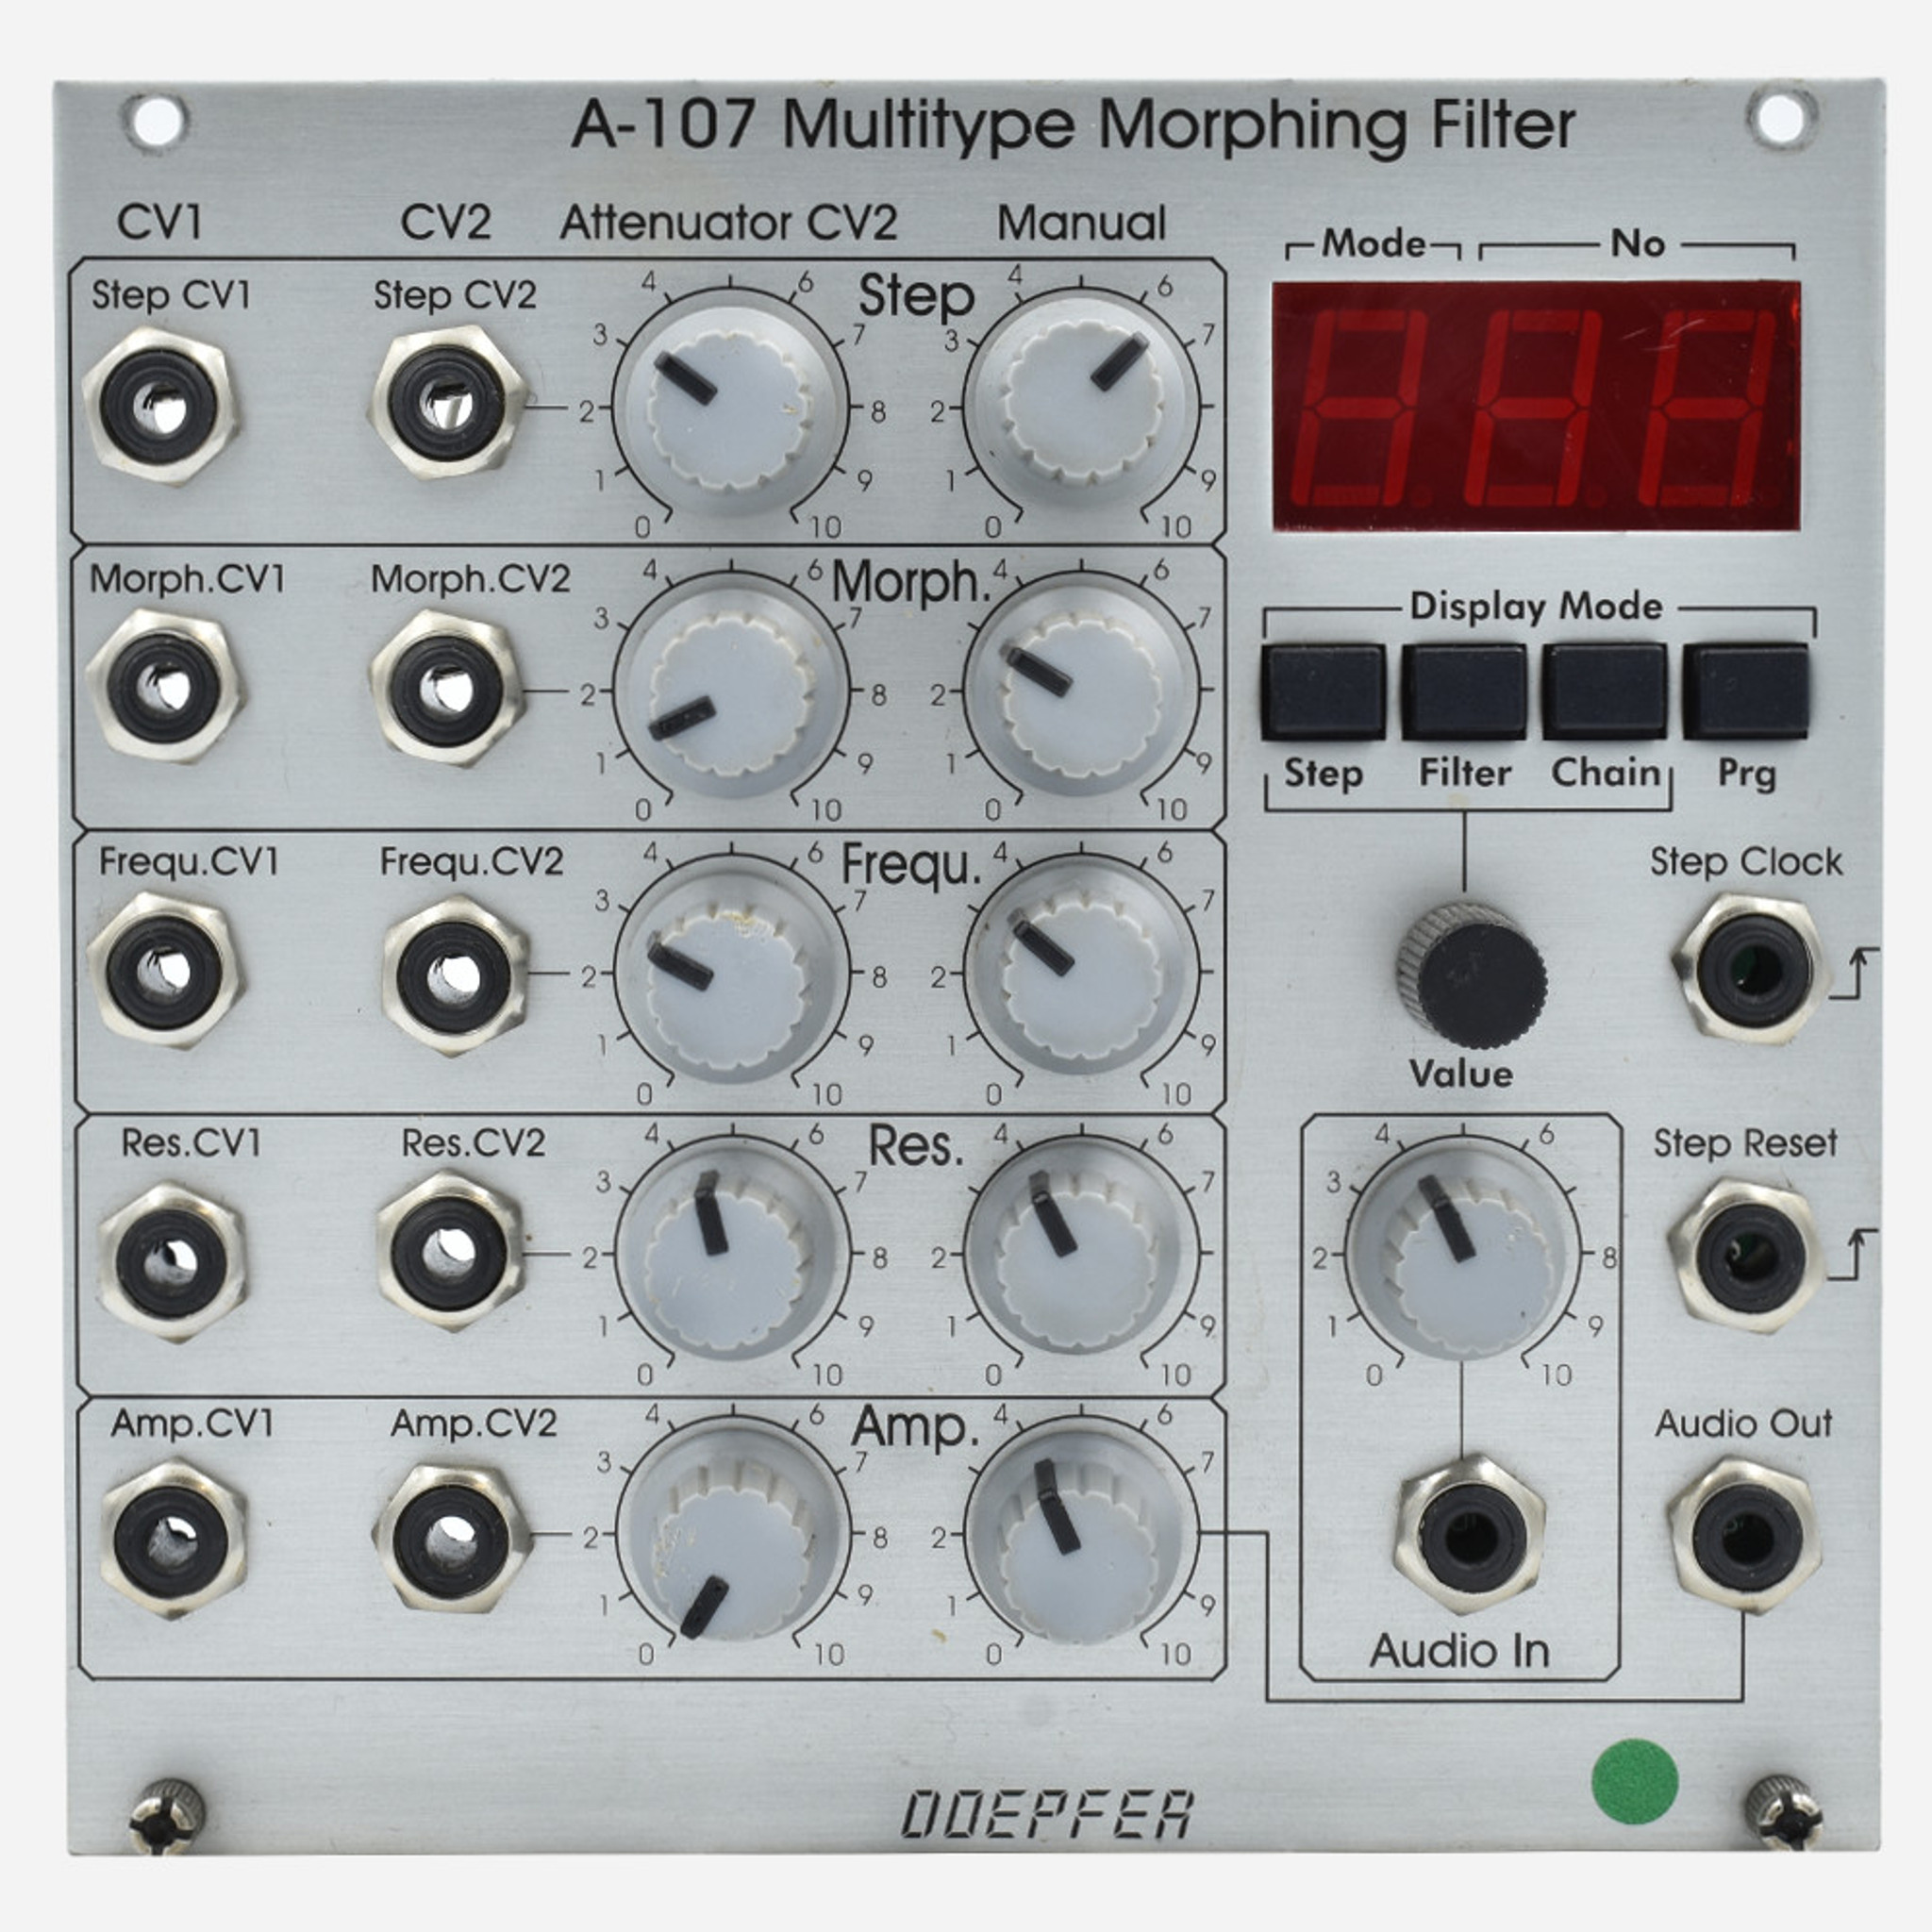 Used A-107 Multitype Morphing Filter